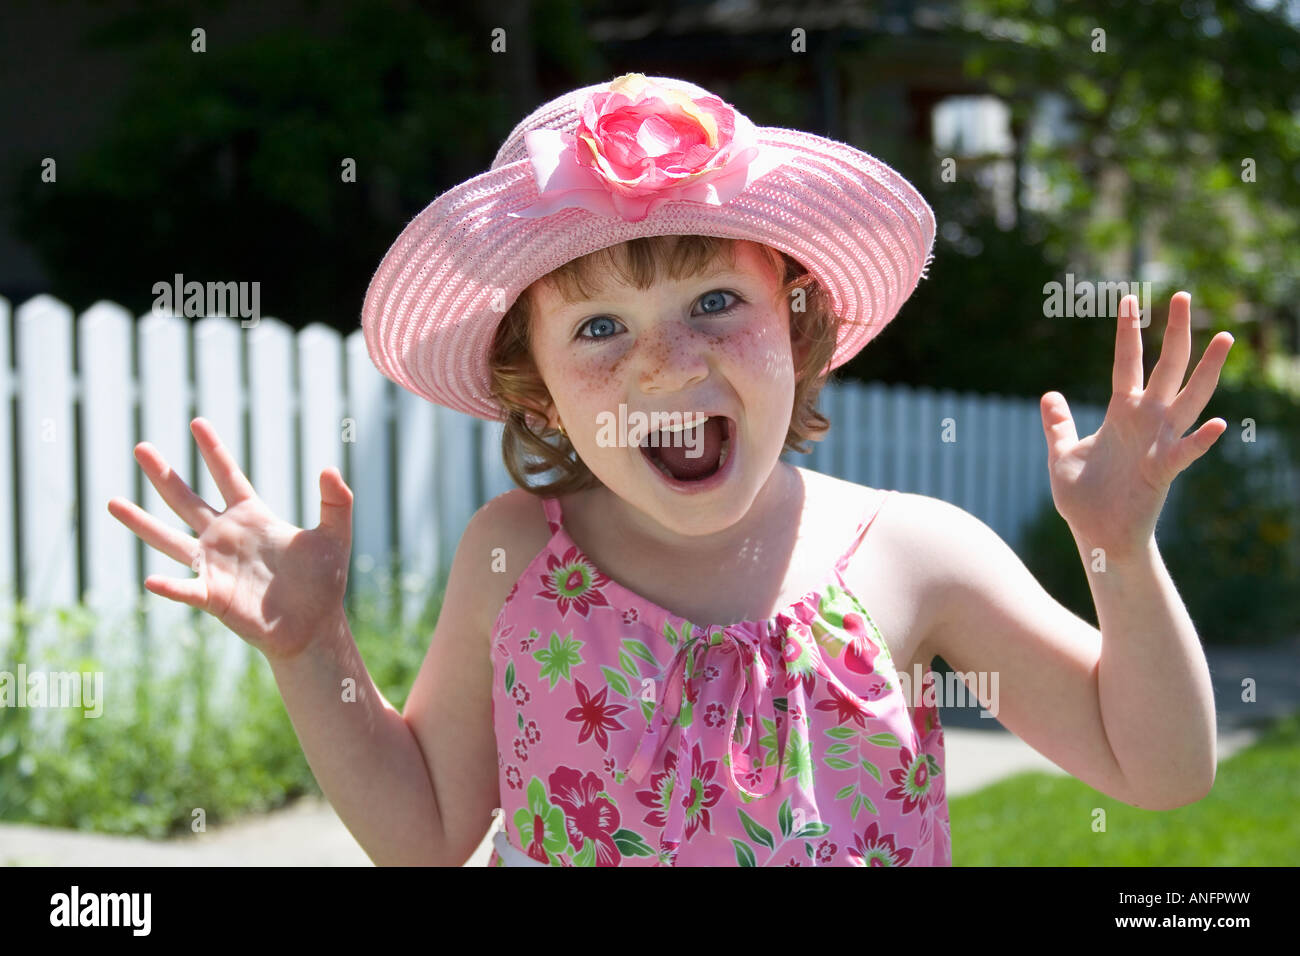 5 year old girl with sundress and hat showing surprise, canada. - Stock Image